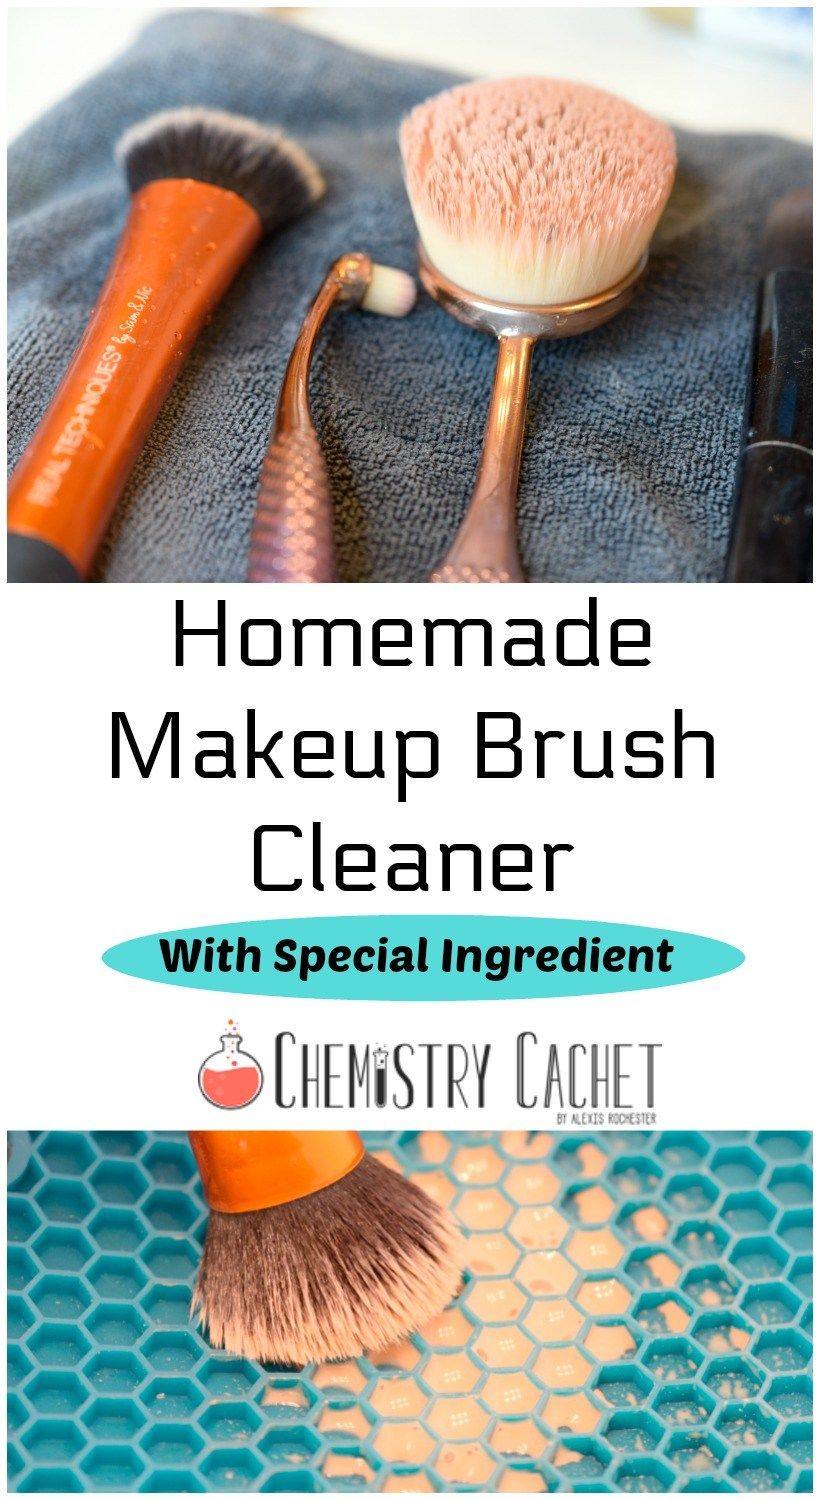 Homemade Makeup Brush Cleaner With Special Ingredient